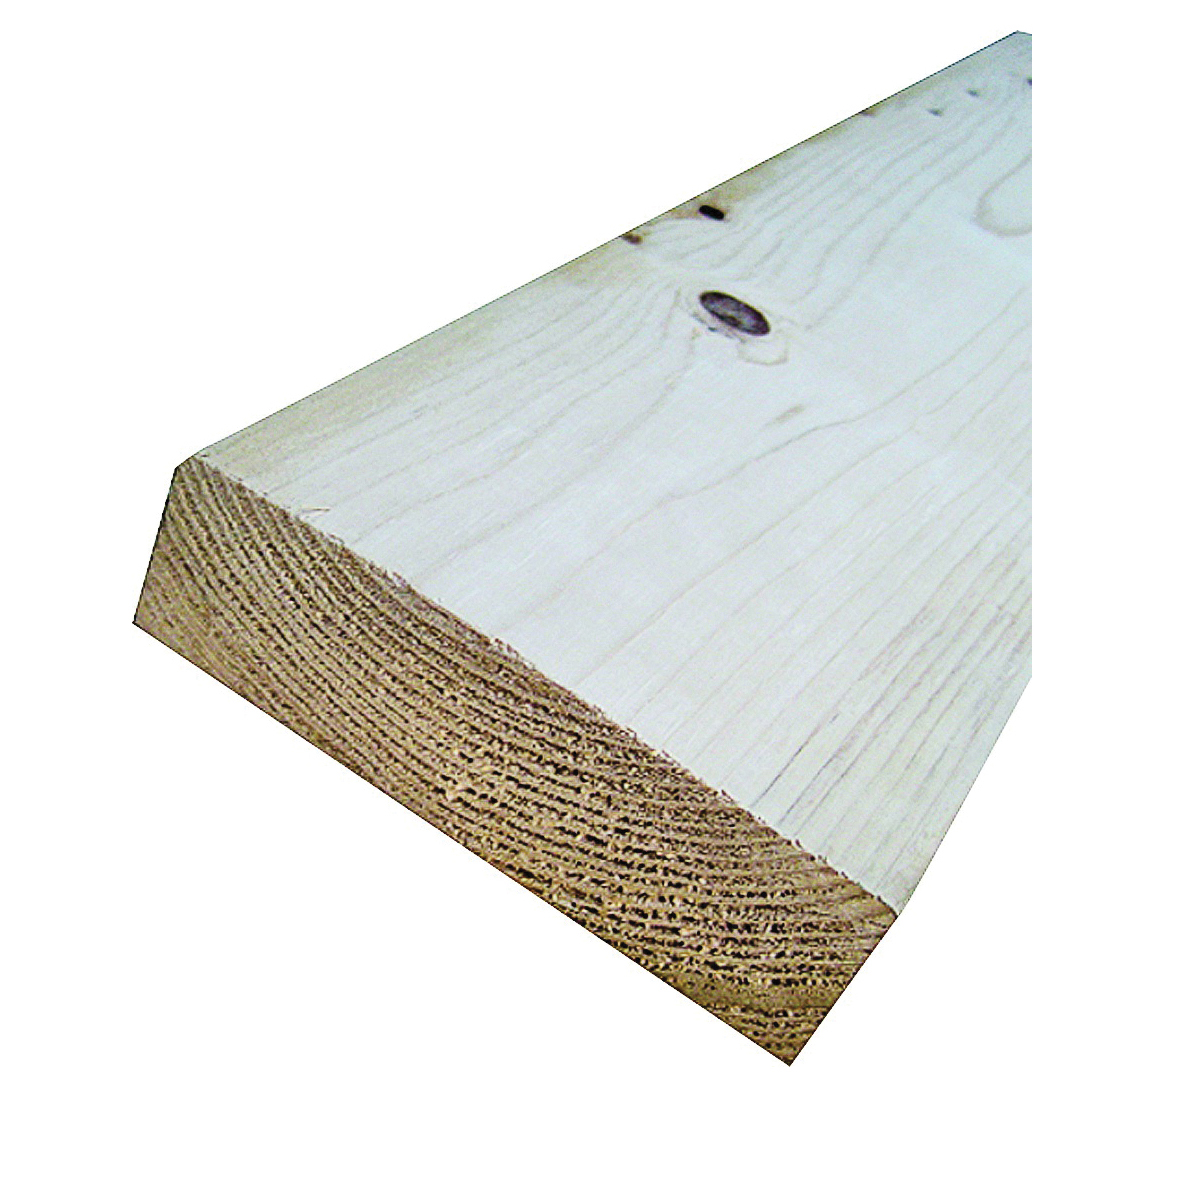 Picture of ALEXANDRIA Moulding 102X4-WS072C Wood Molding